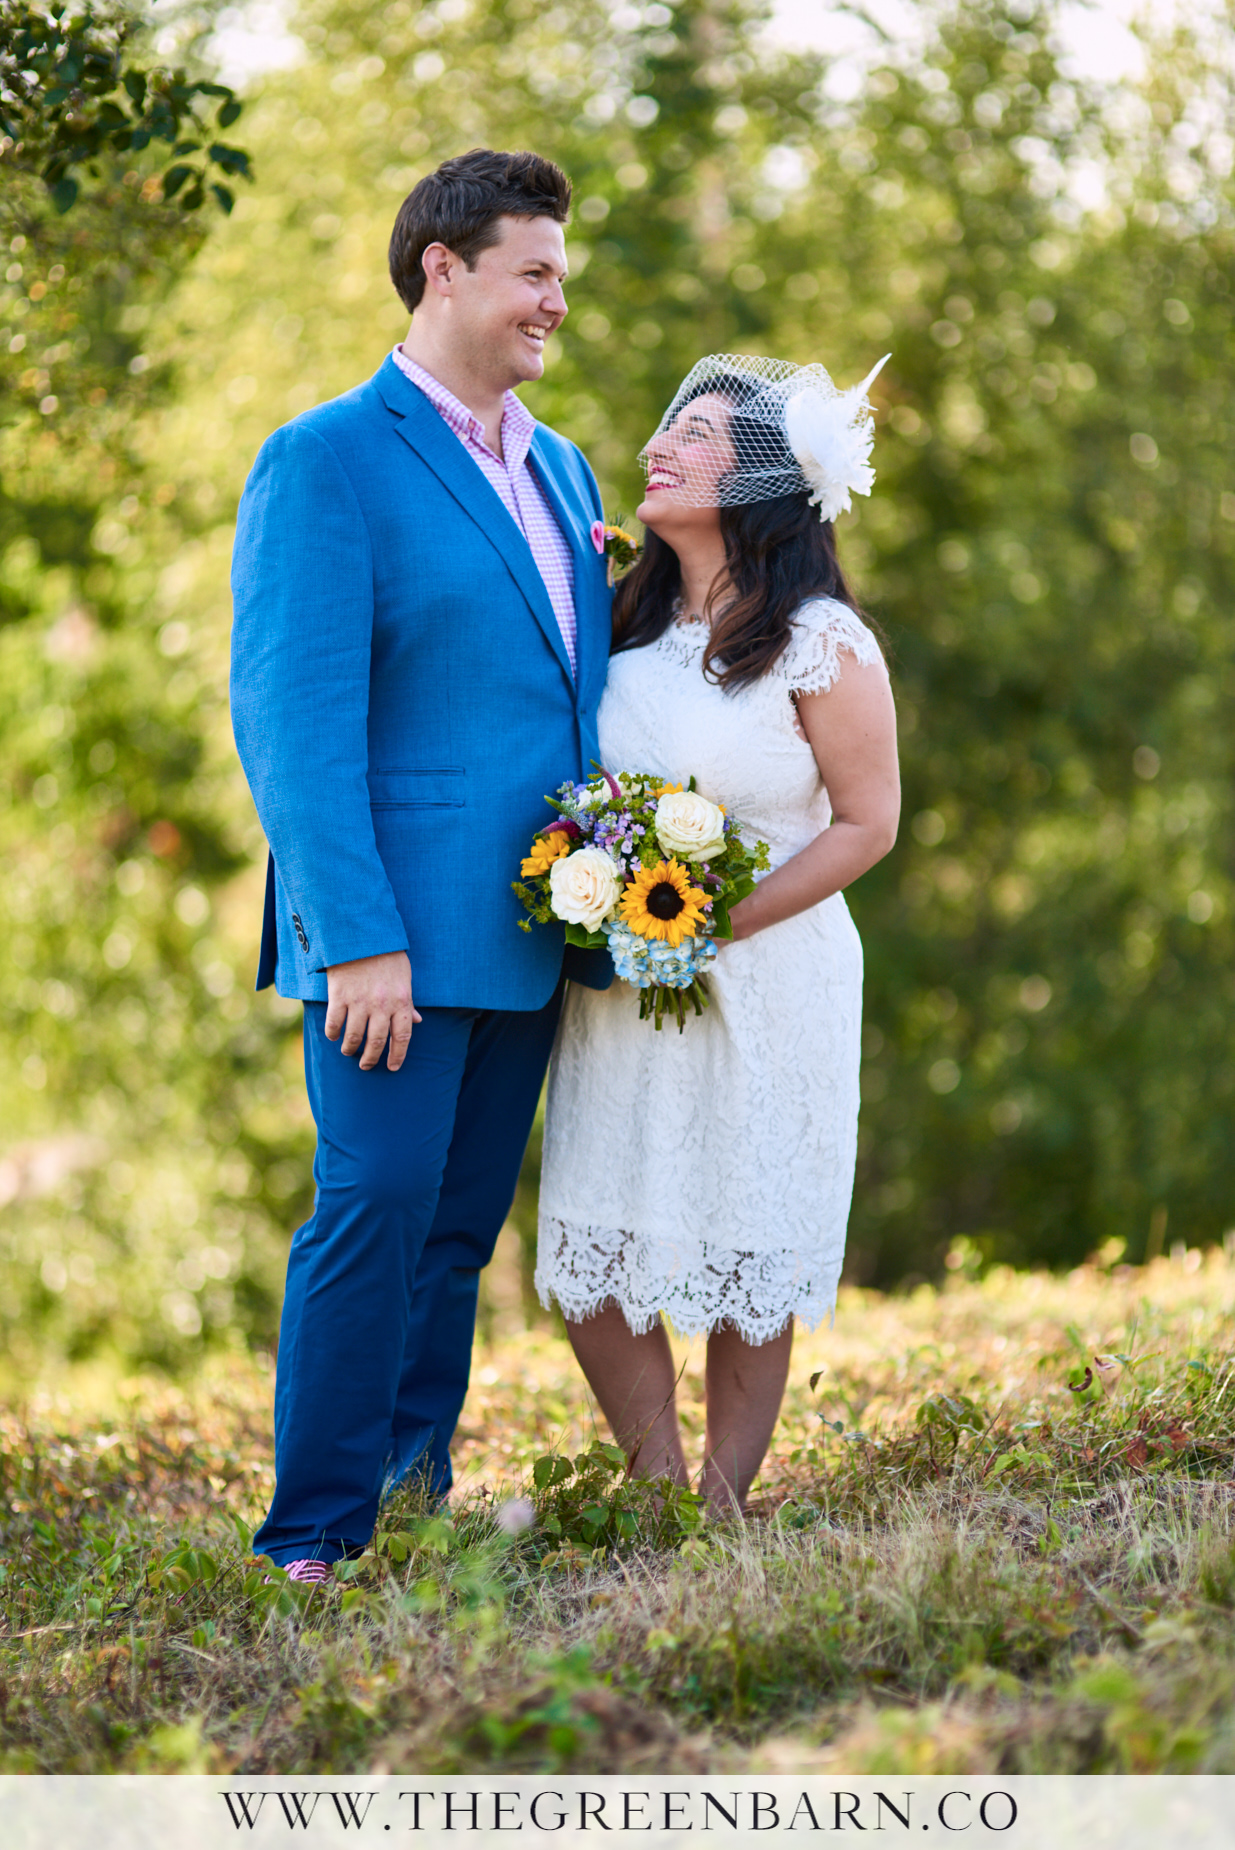 Bride and Groom Laughing Photo Non-Traditional Wedding | NH Wedding Photographer